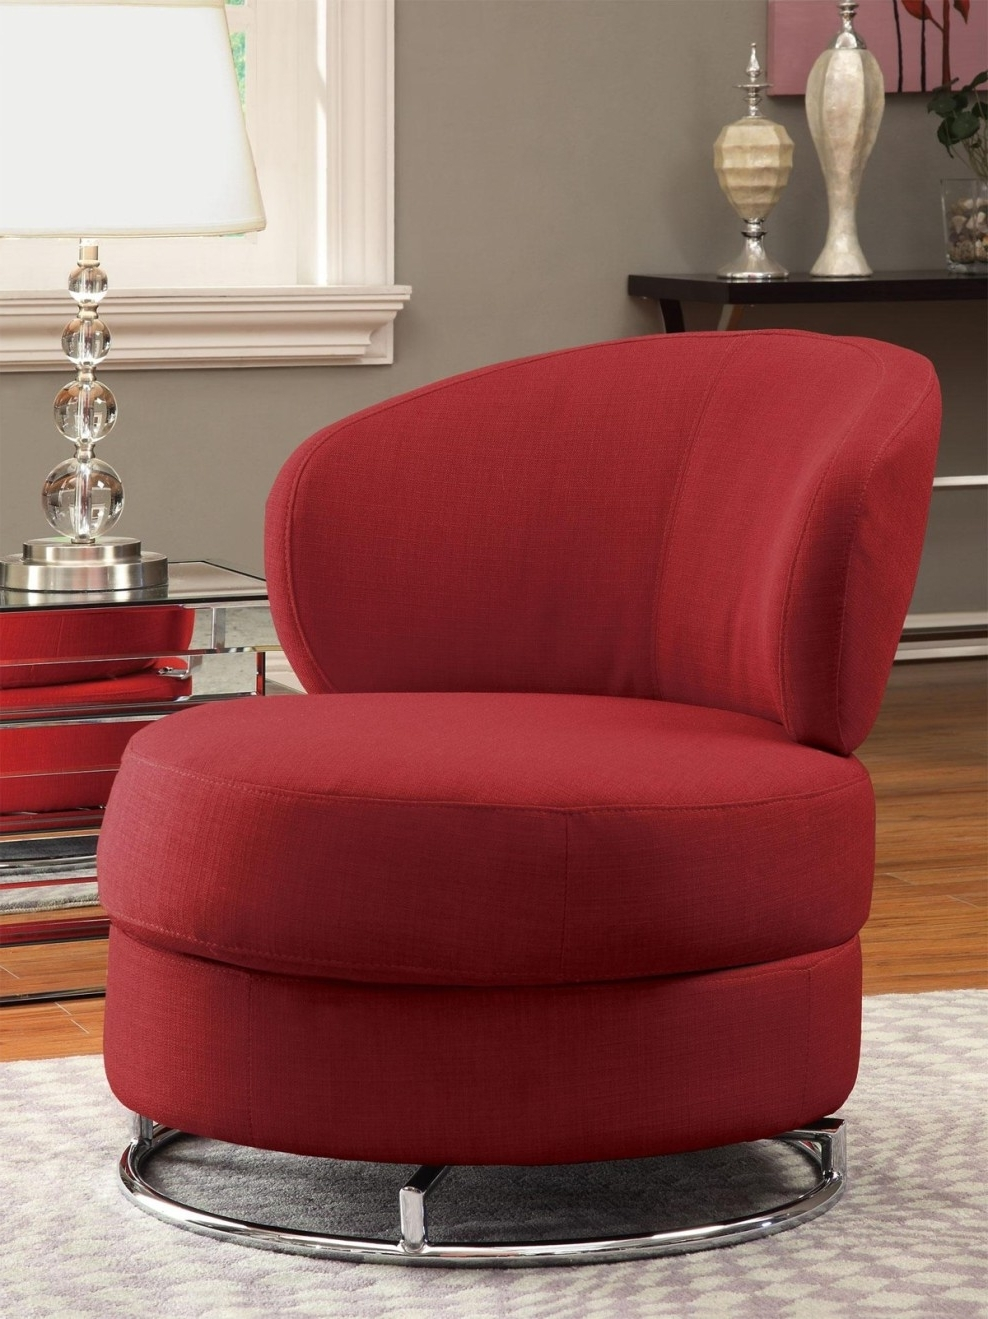 Sofa : Excellent Round Sofa Chair Living Room Furniture Harveys Inside Popular Round Swivel Sofa Chairs (View 11 of 15)